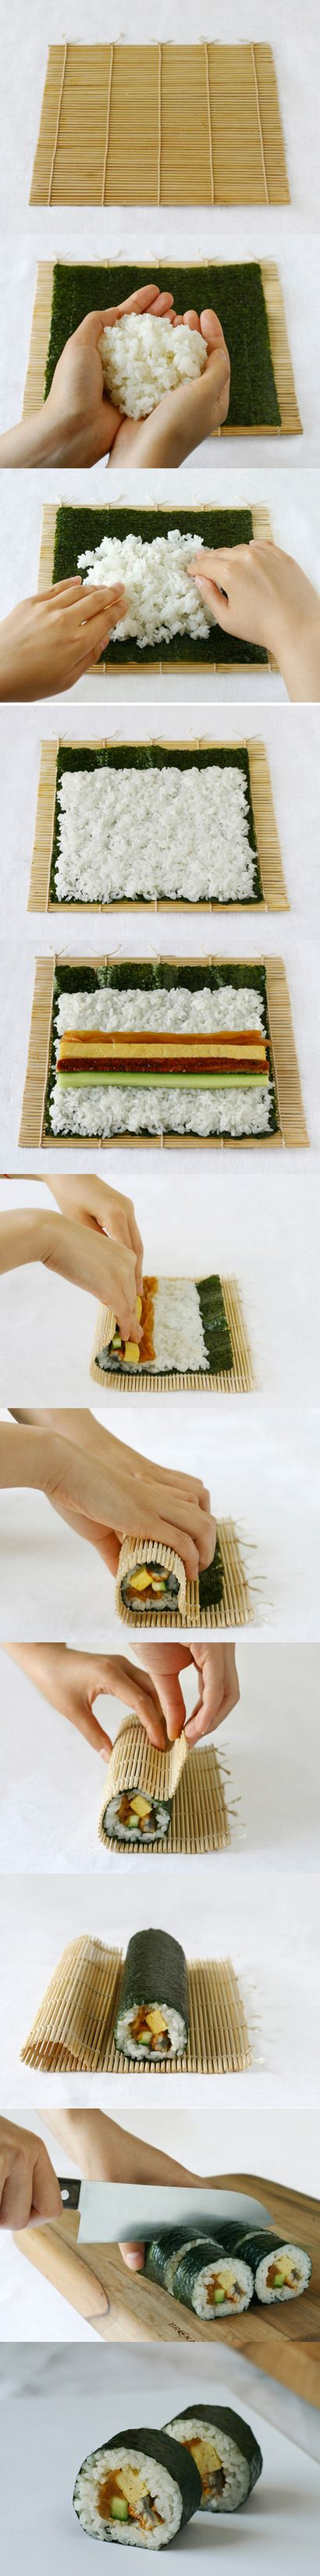 DIY - How to make sushi rolls